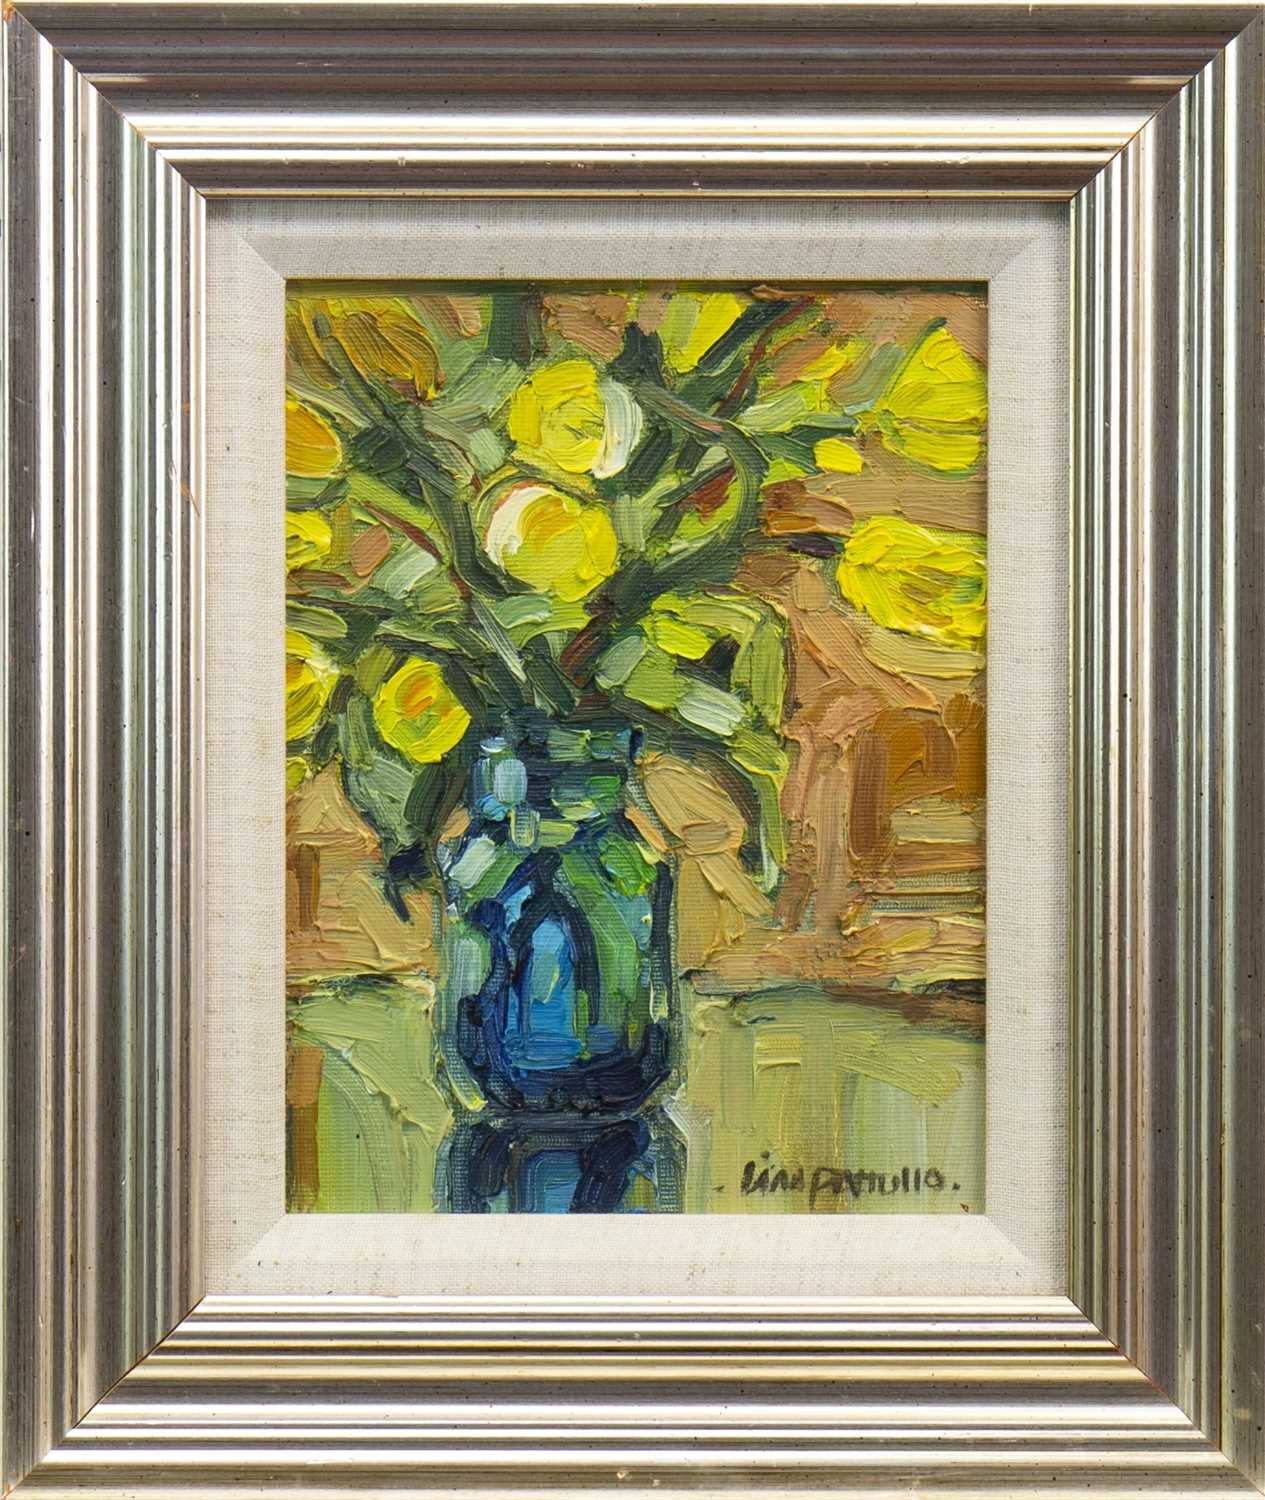 Lot 535-STILL LIFE, AN OIL BY LIN PATTULLO